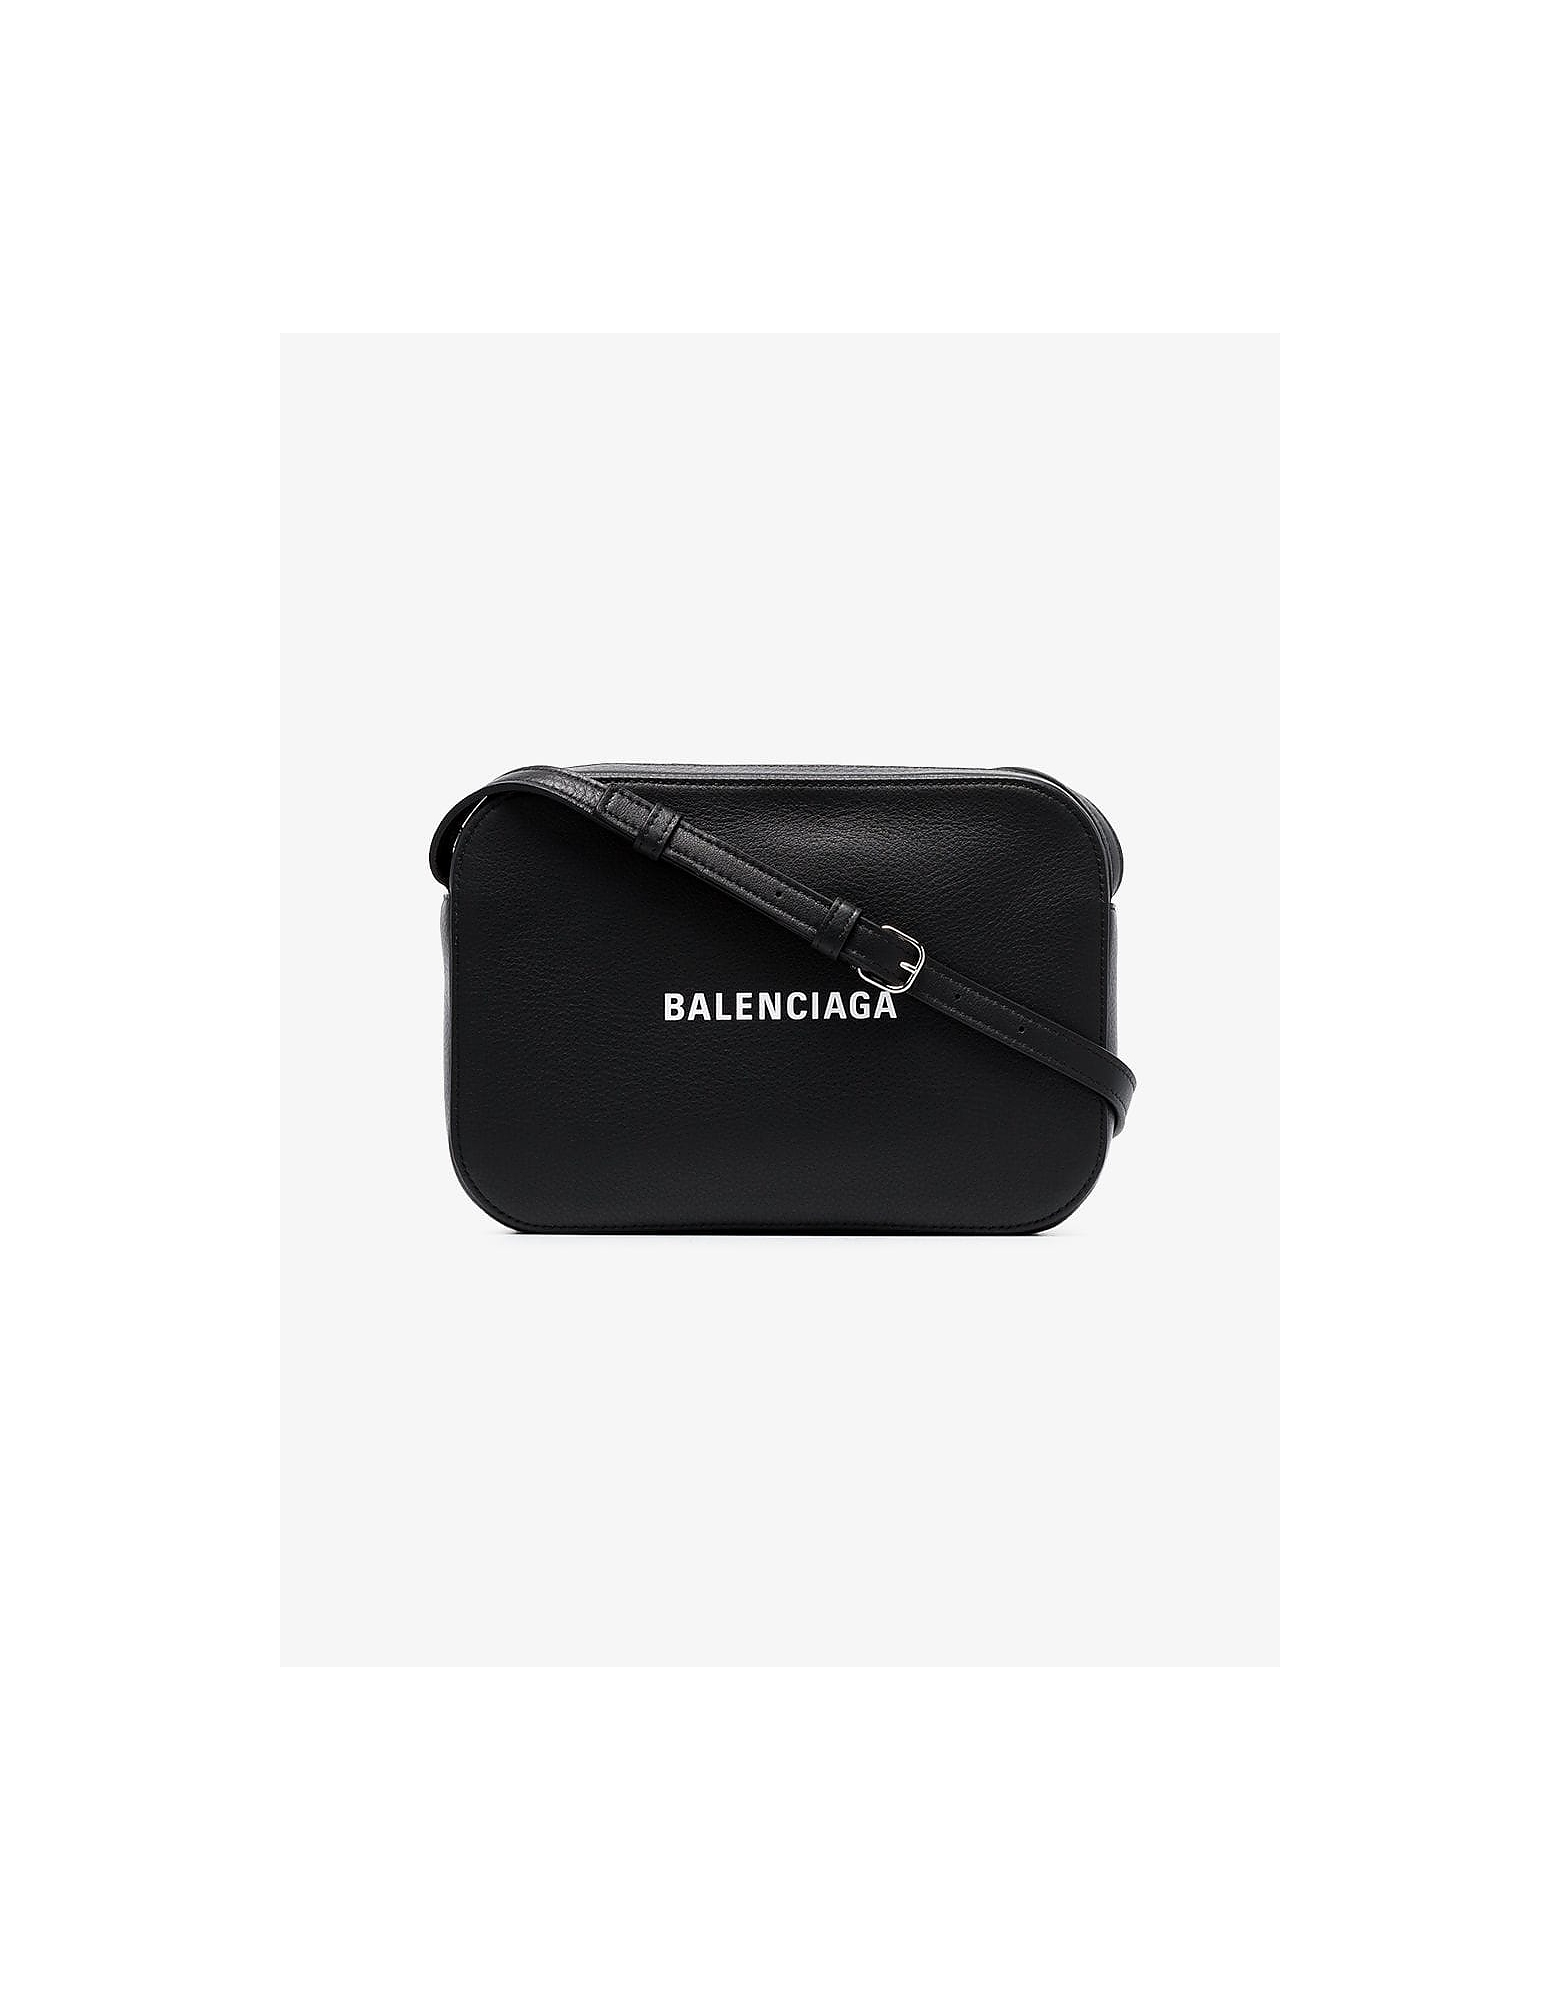 Balenciaga Bags BLACK EVERYDAY LEATHER CAMERA BAG